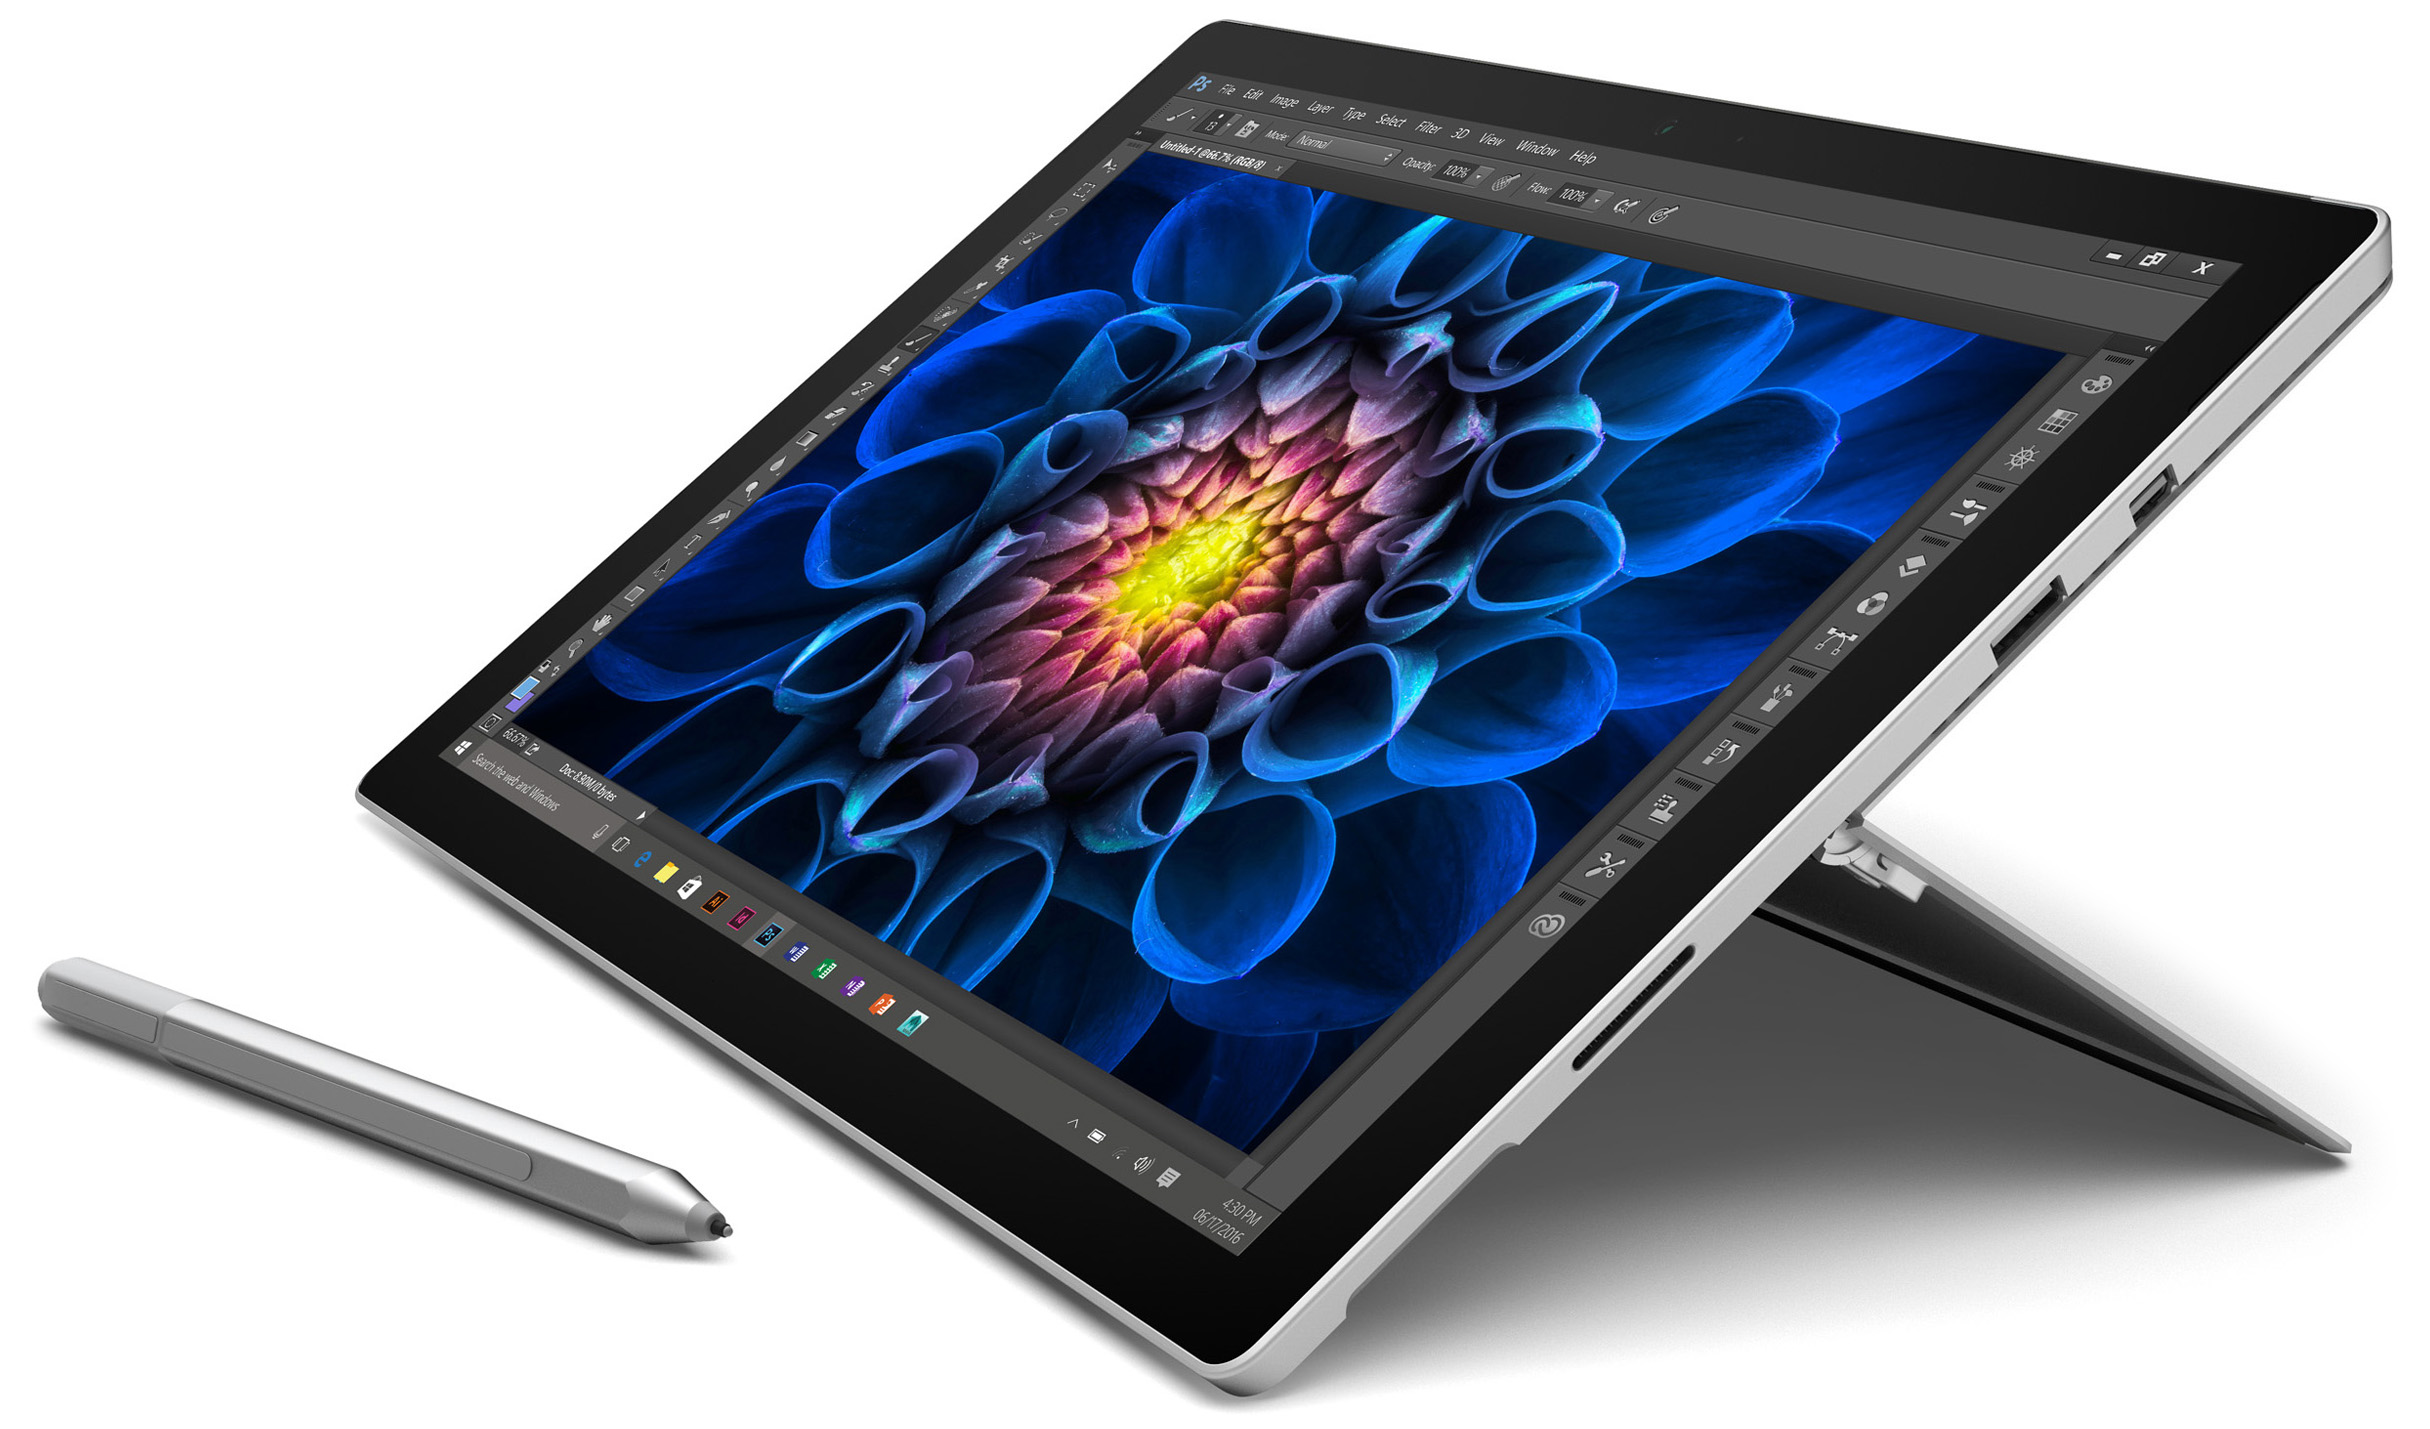 Commercial Microsoft Surface Pro 4 - 128GB / Intel Core i5